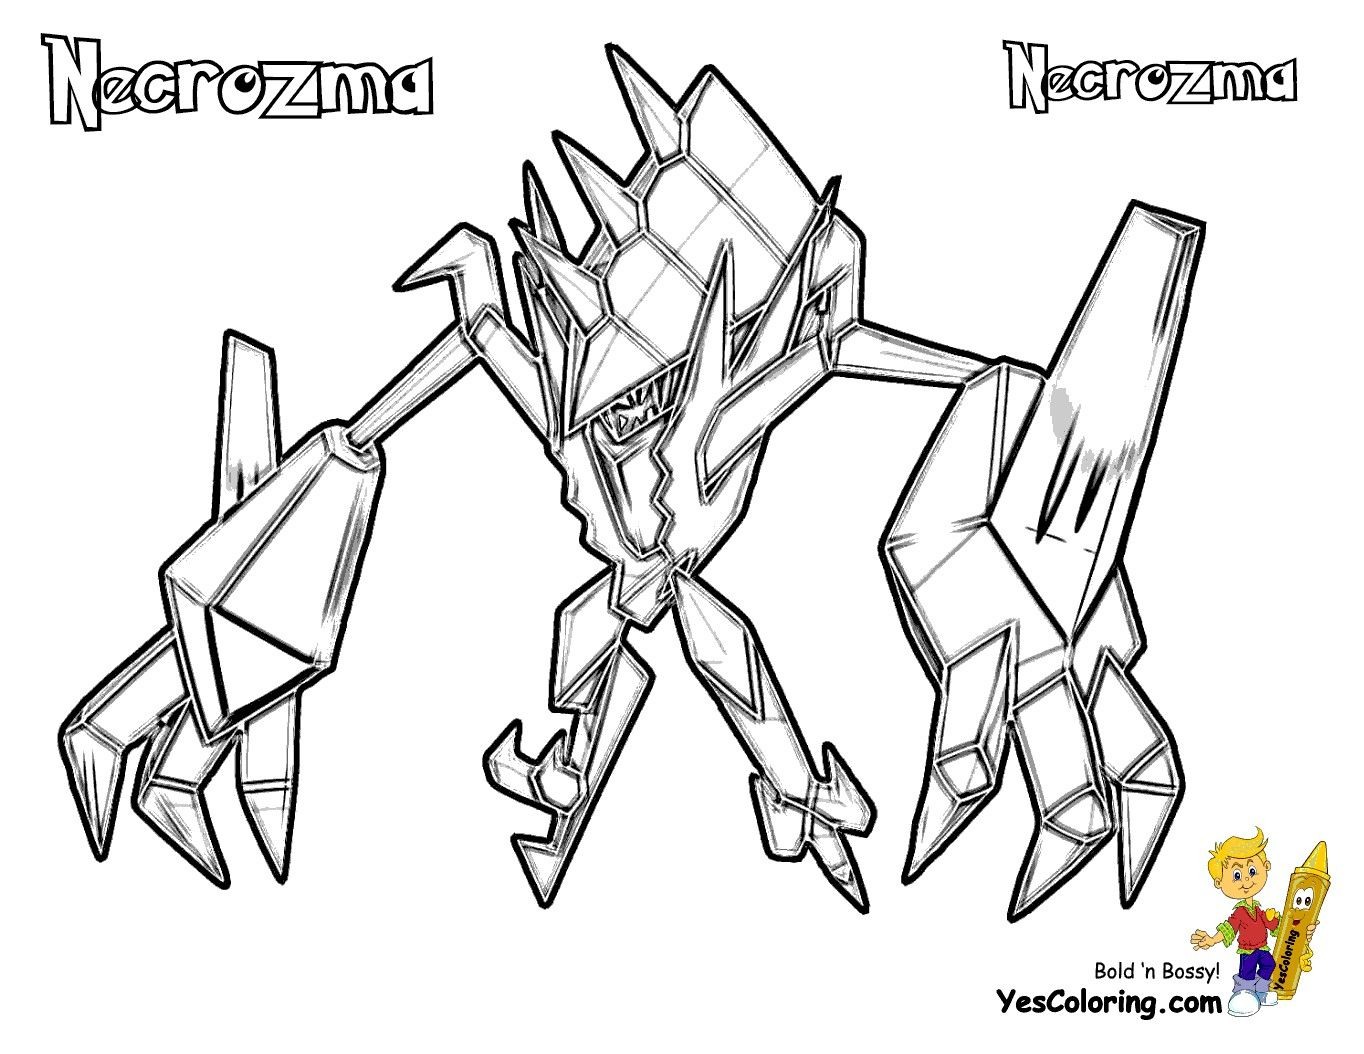 Pokemon Necrozma Coloring Page – From the thousands of images on